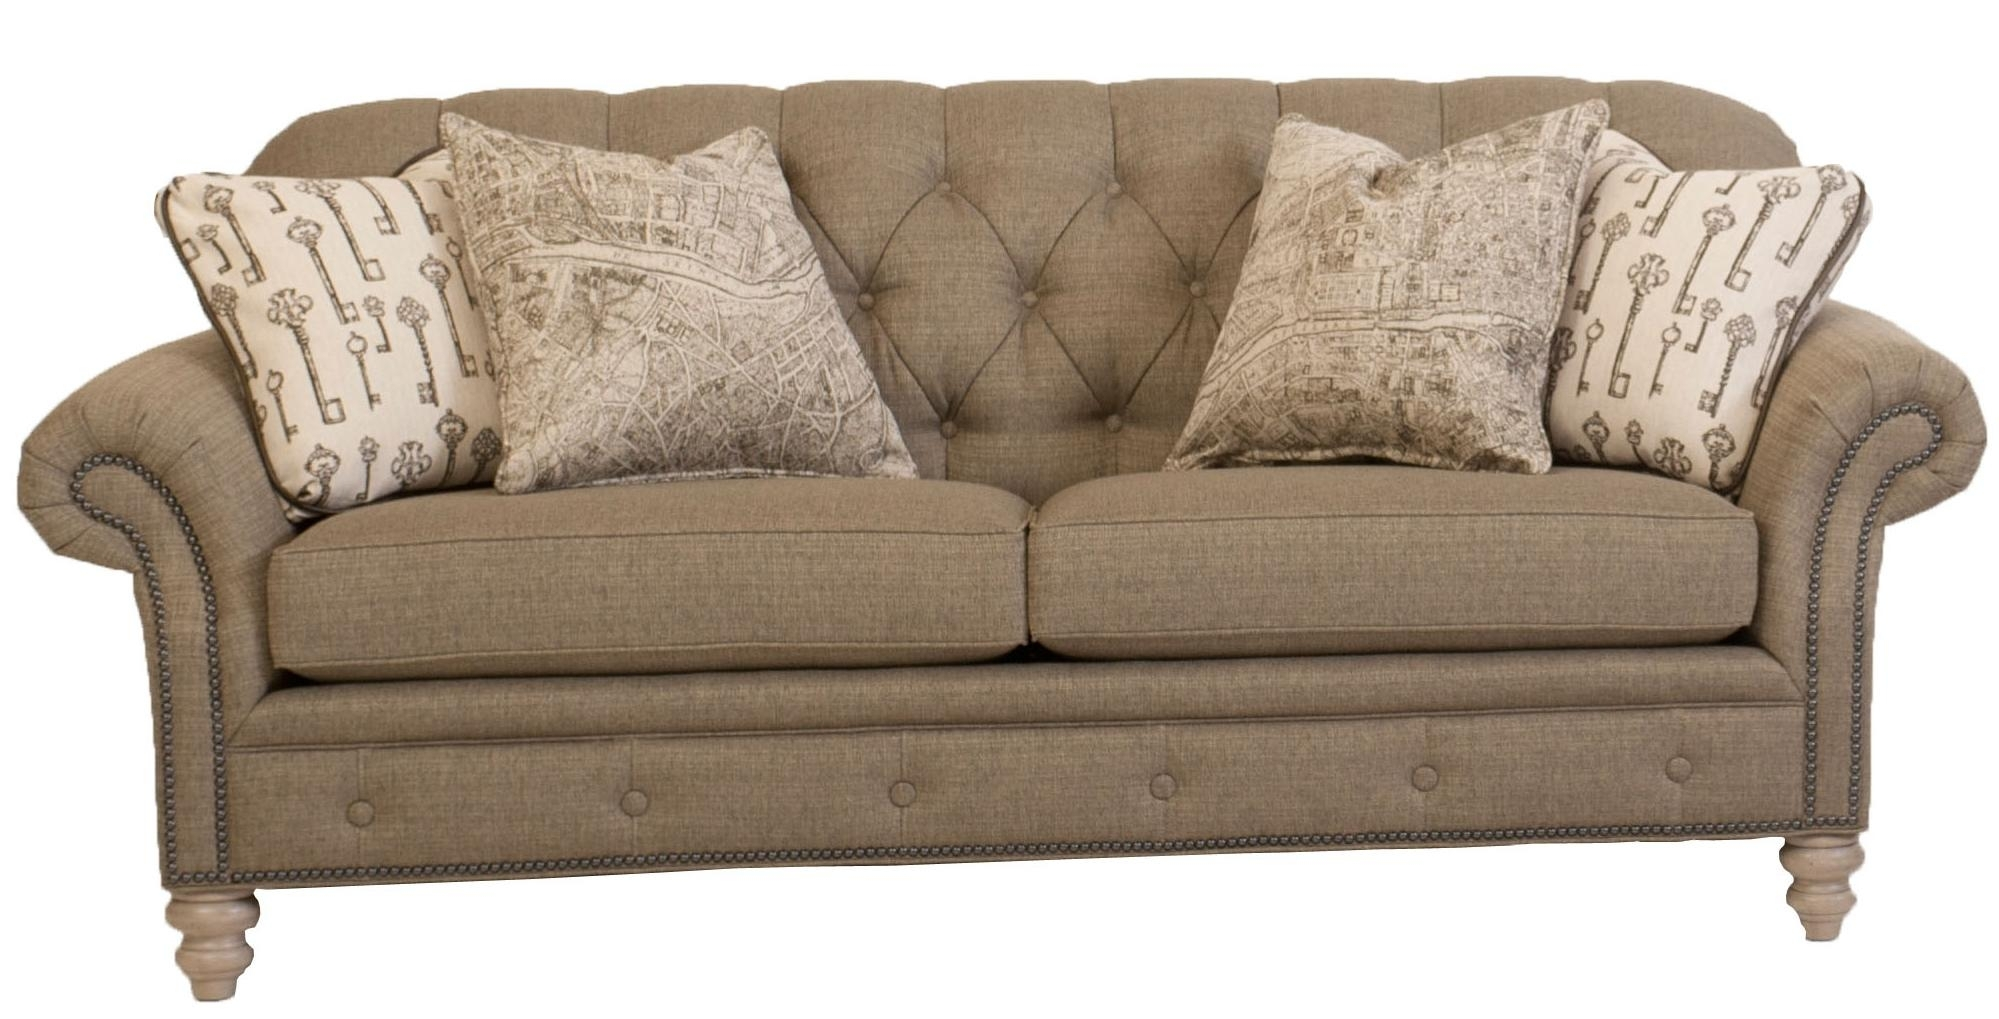 Fresh Sectional Sofa With Nailhead Trim 64 For Your Sofas And With Sectional Sofas With Nailhead Trim (Image 5 of 10)